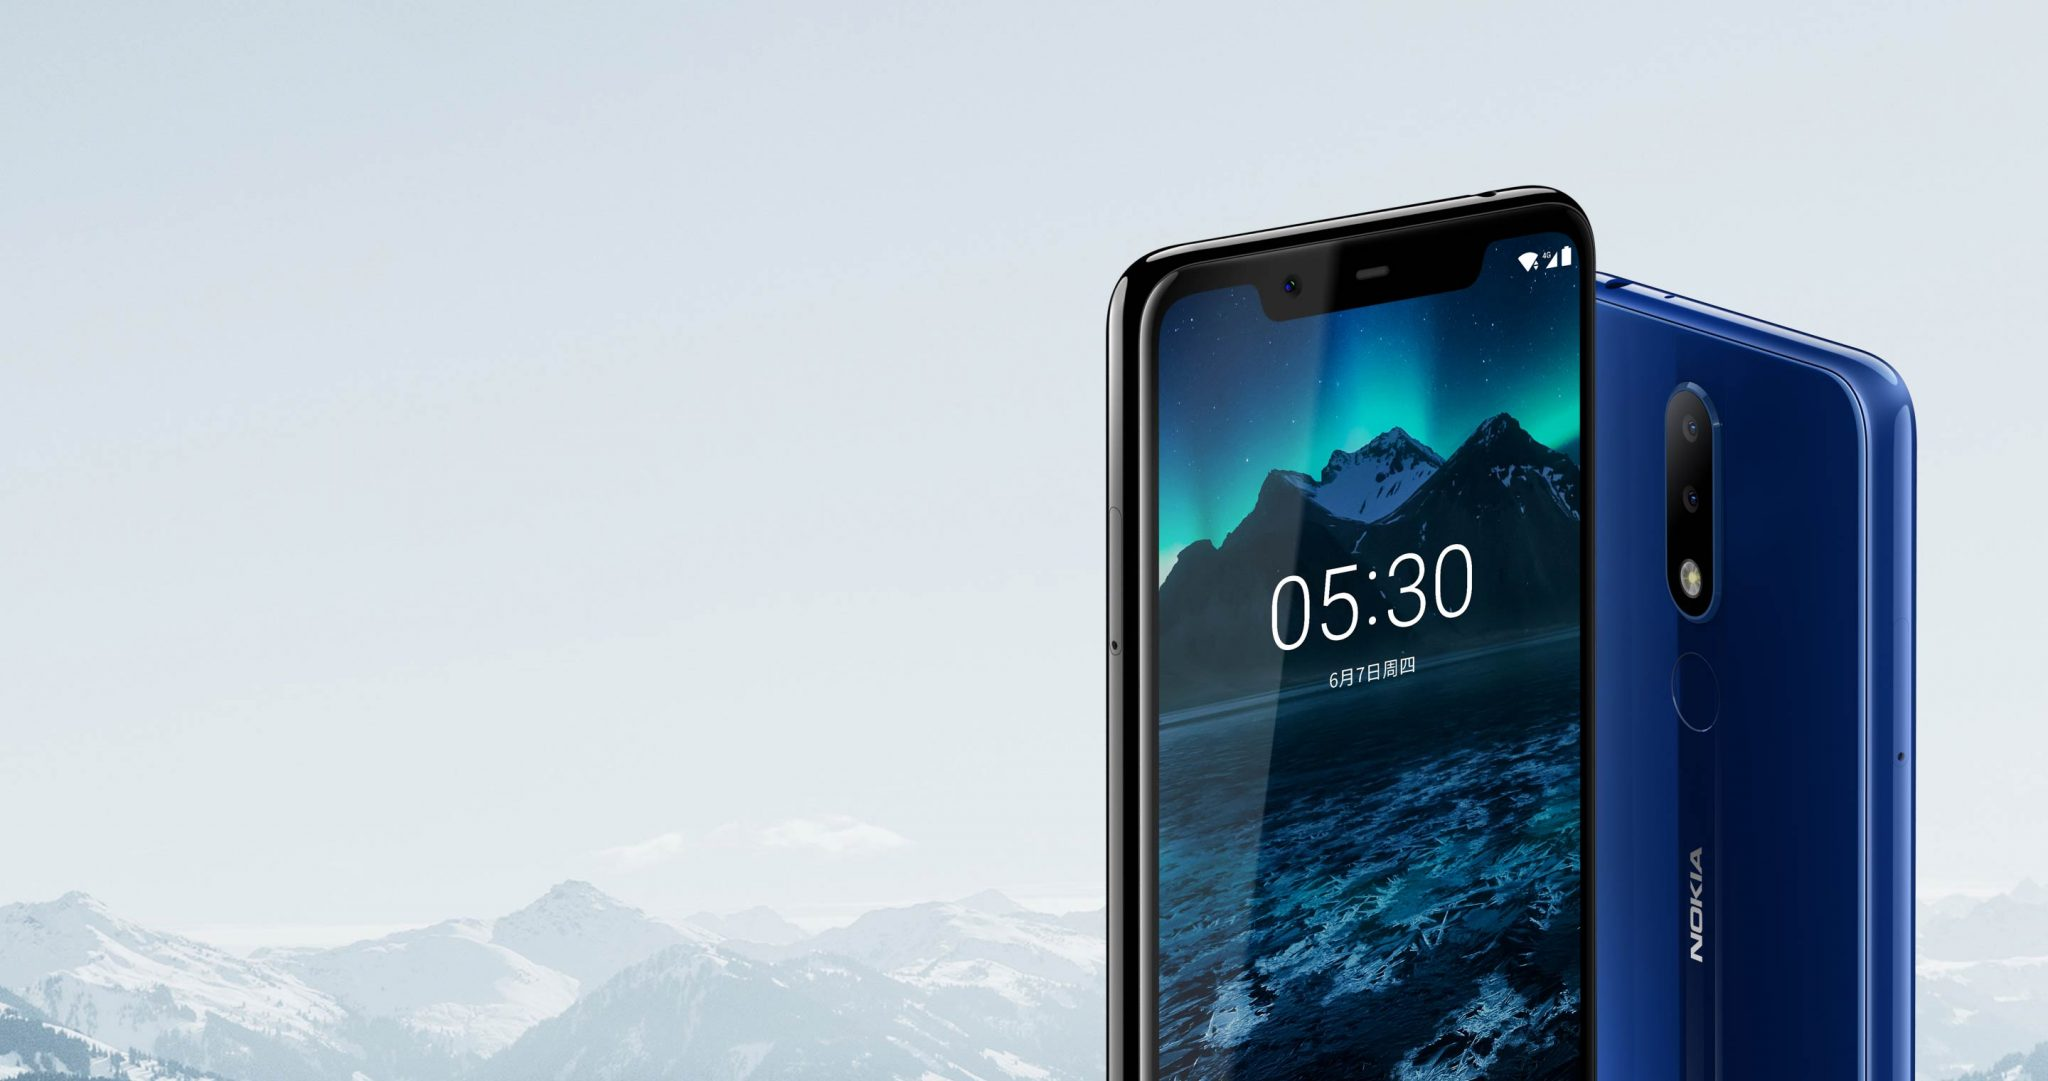 Nokia X5 is now official with Helio P60, Dual Cameras & a Notch 1